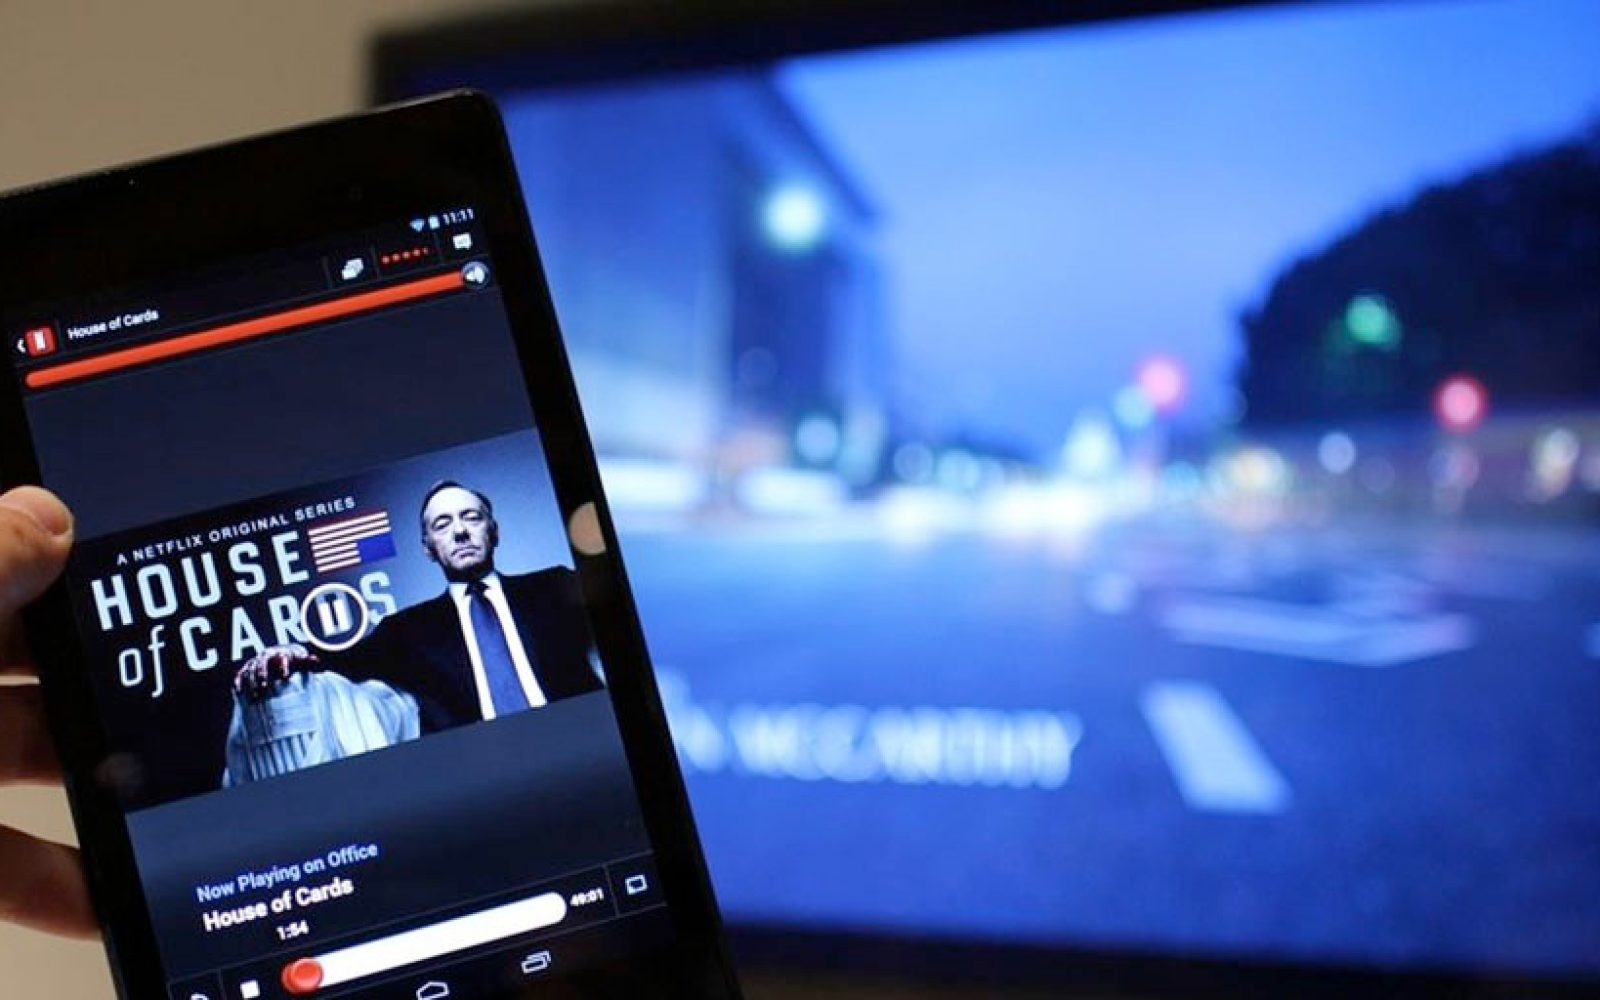 Netflix for Android now lets you download videos to watch offline